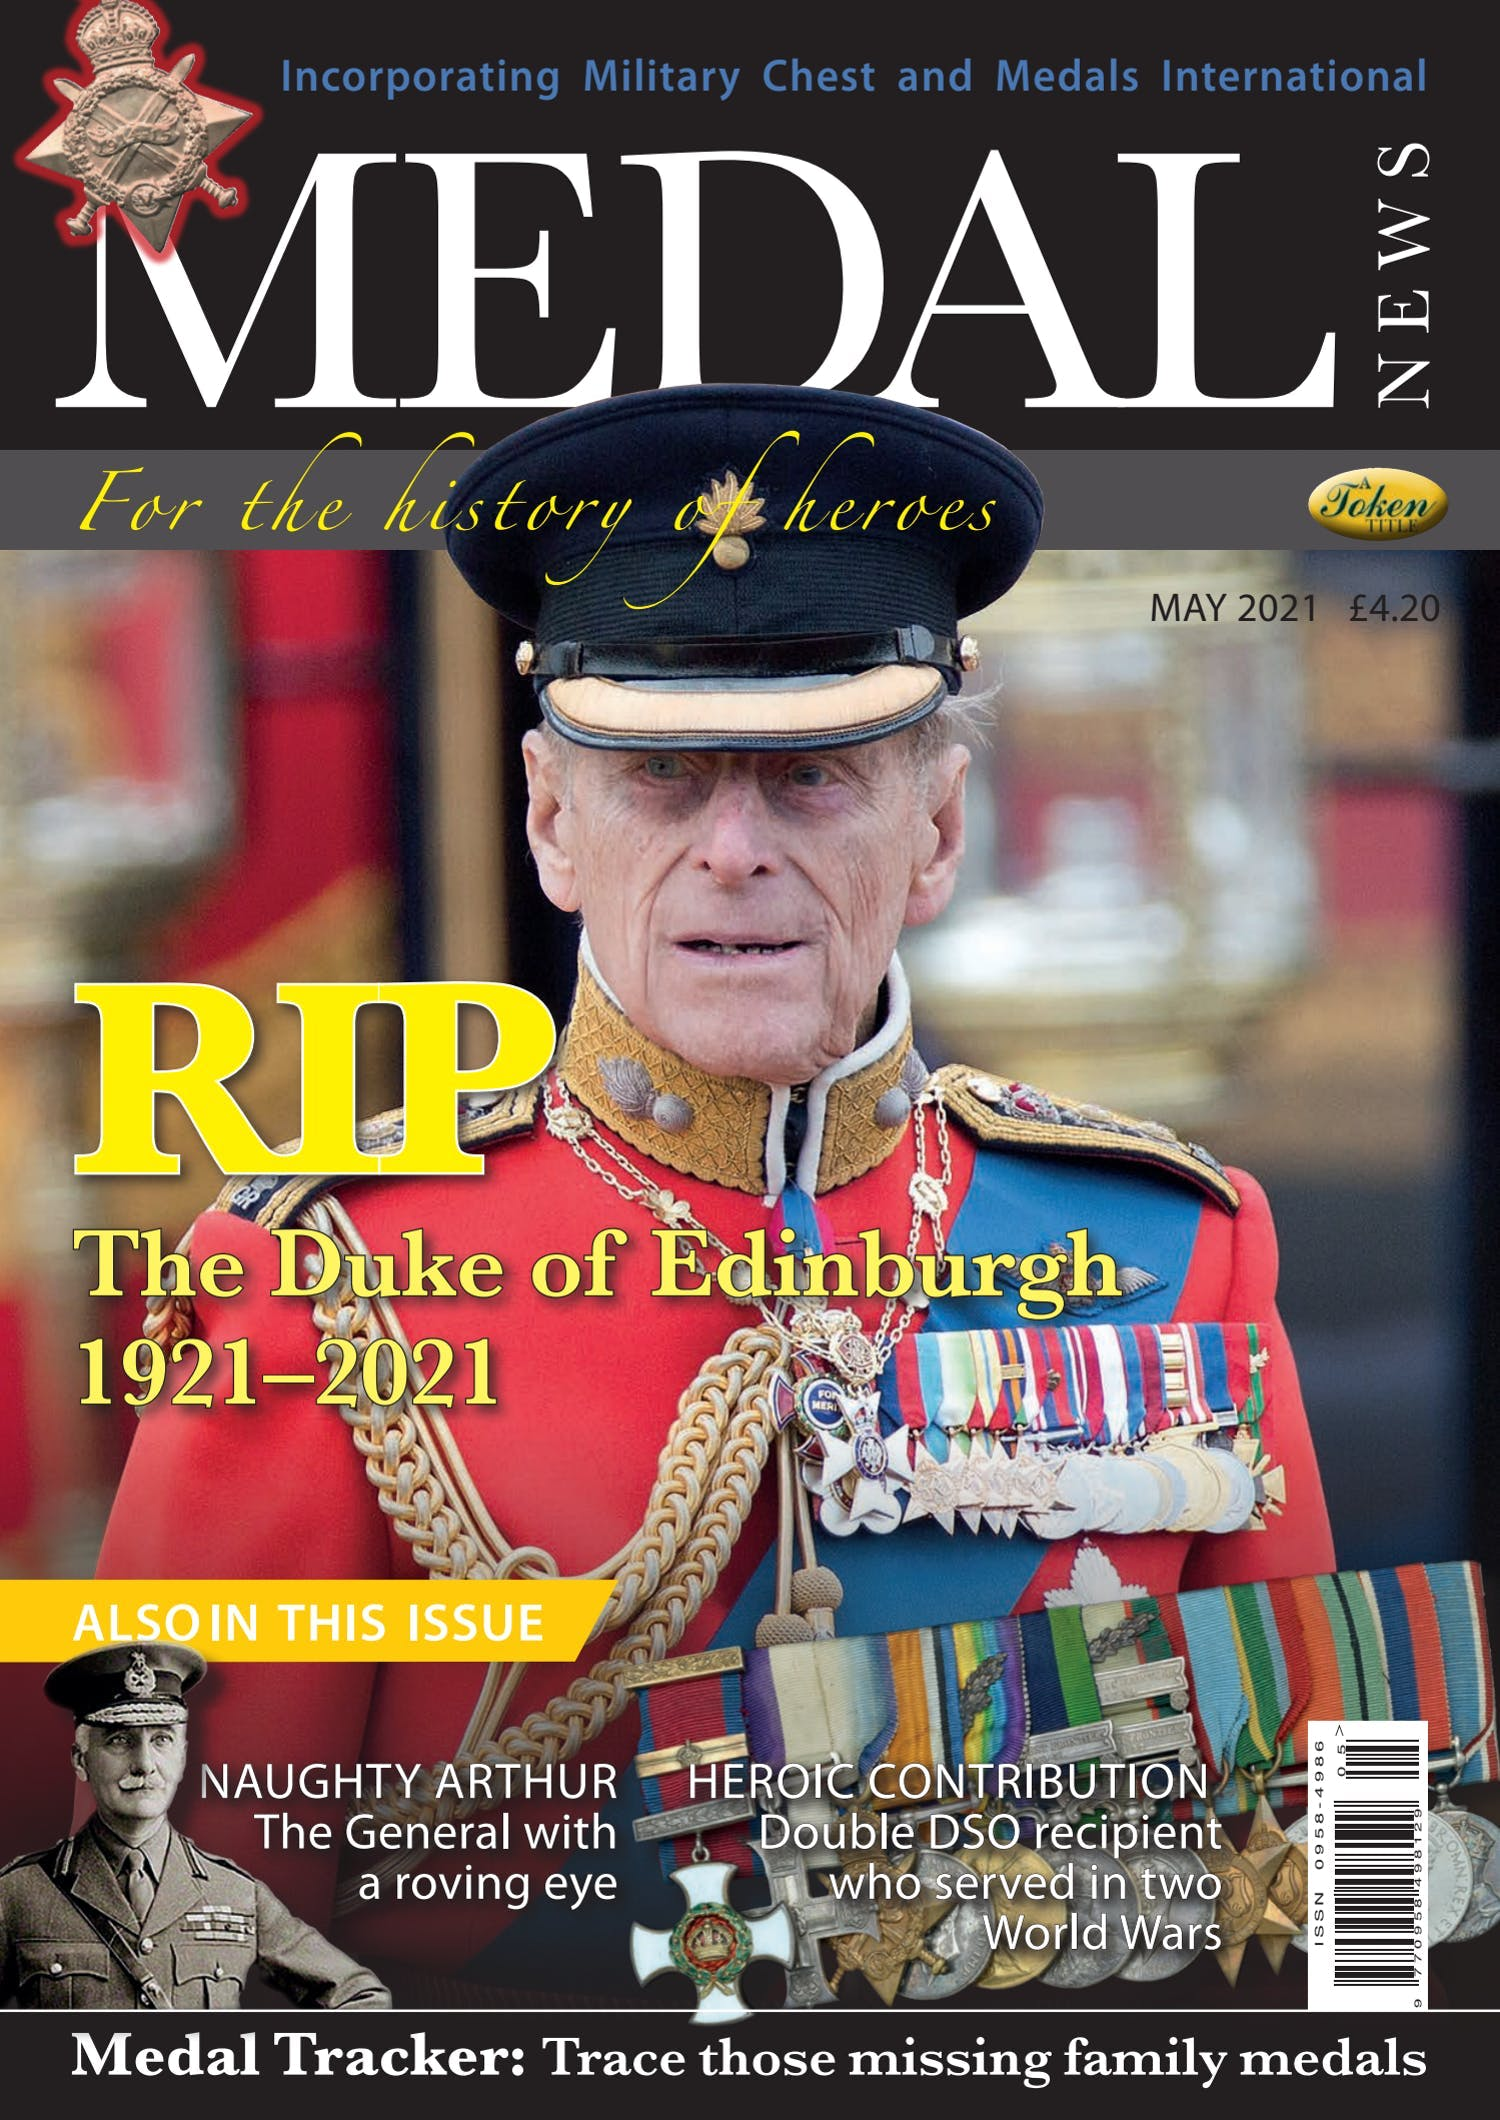 The front cover of Medal News, May 2021 - Volume 59, Number 5